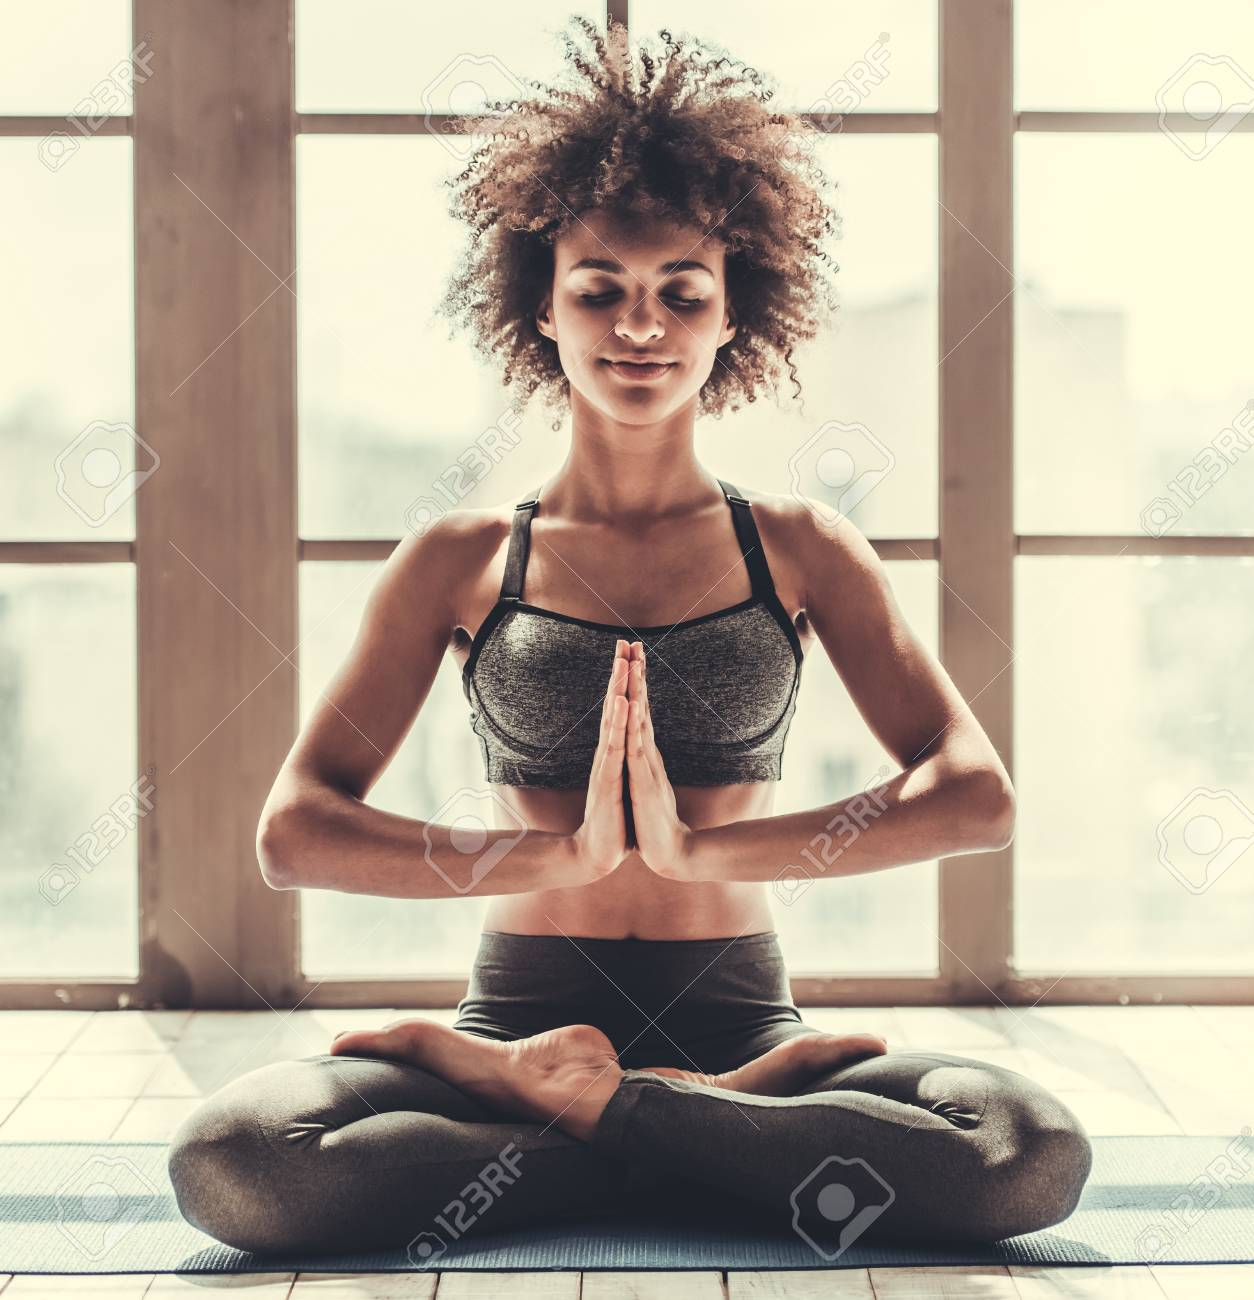 Attractive Afro American girl in sportswear is doing yoga and smiling - 81410831